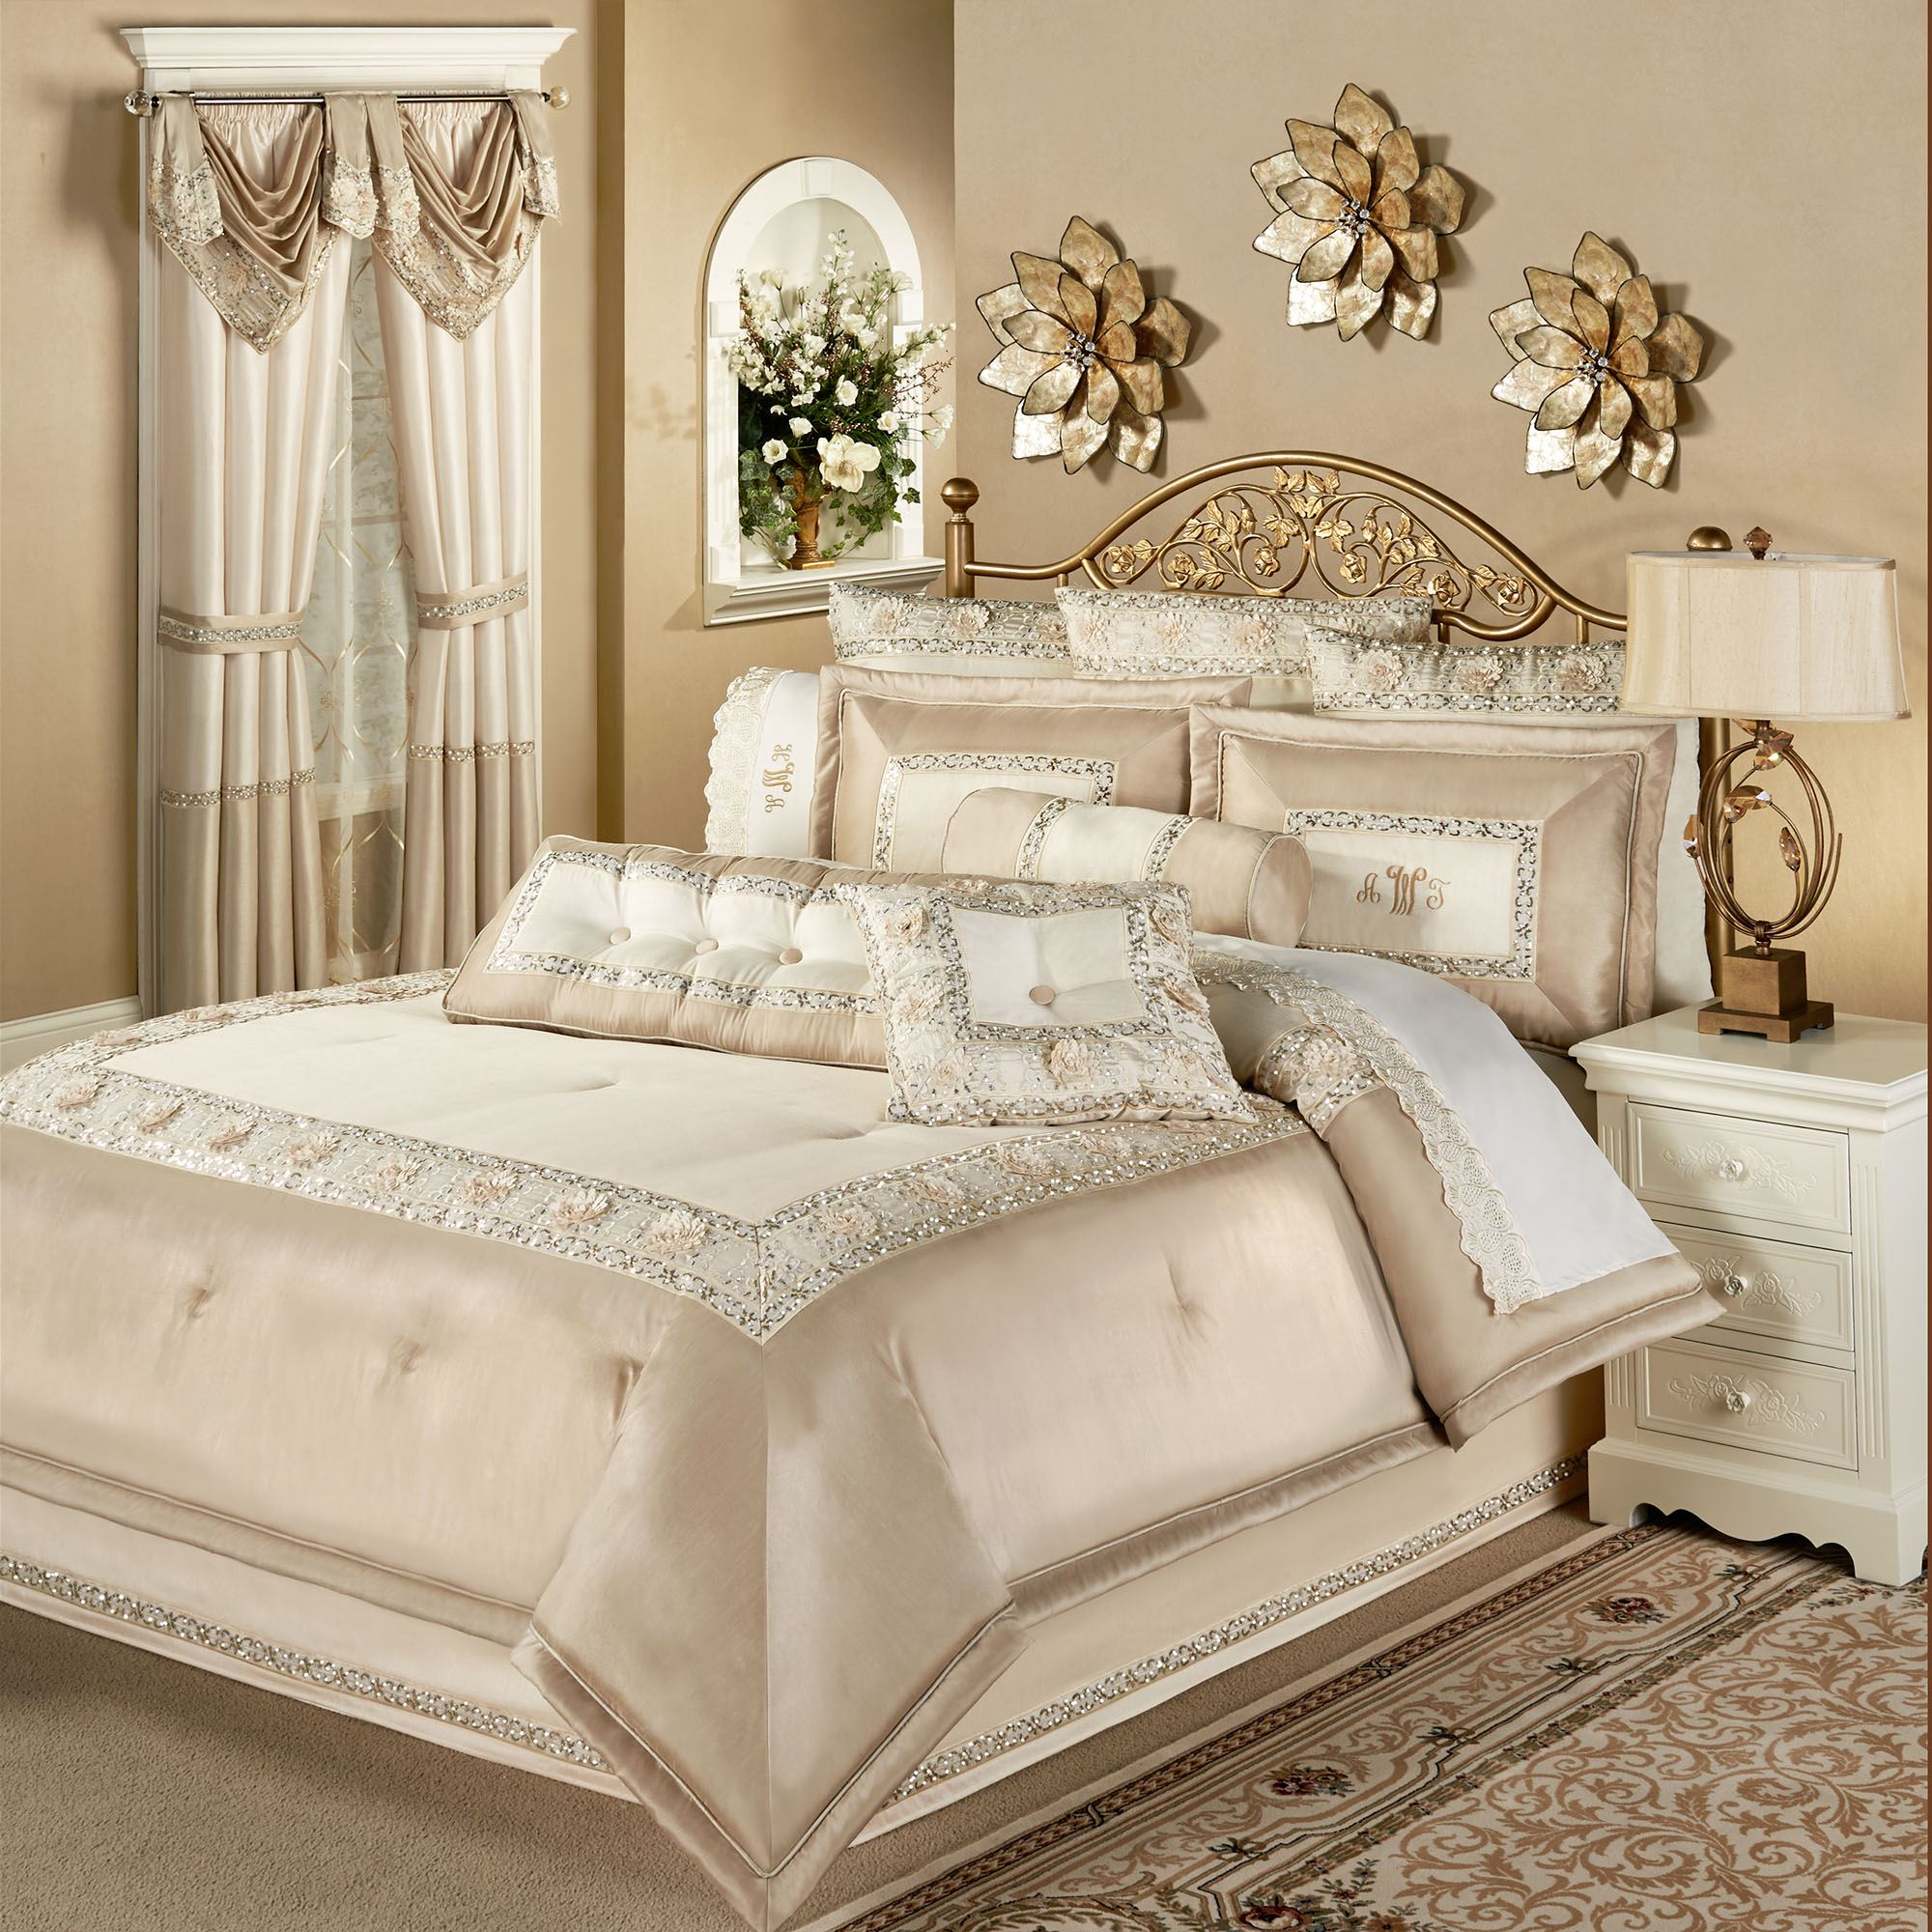 sets cream comforter lodge ecrins and colored set blue style